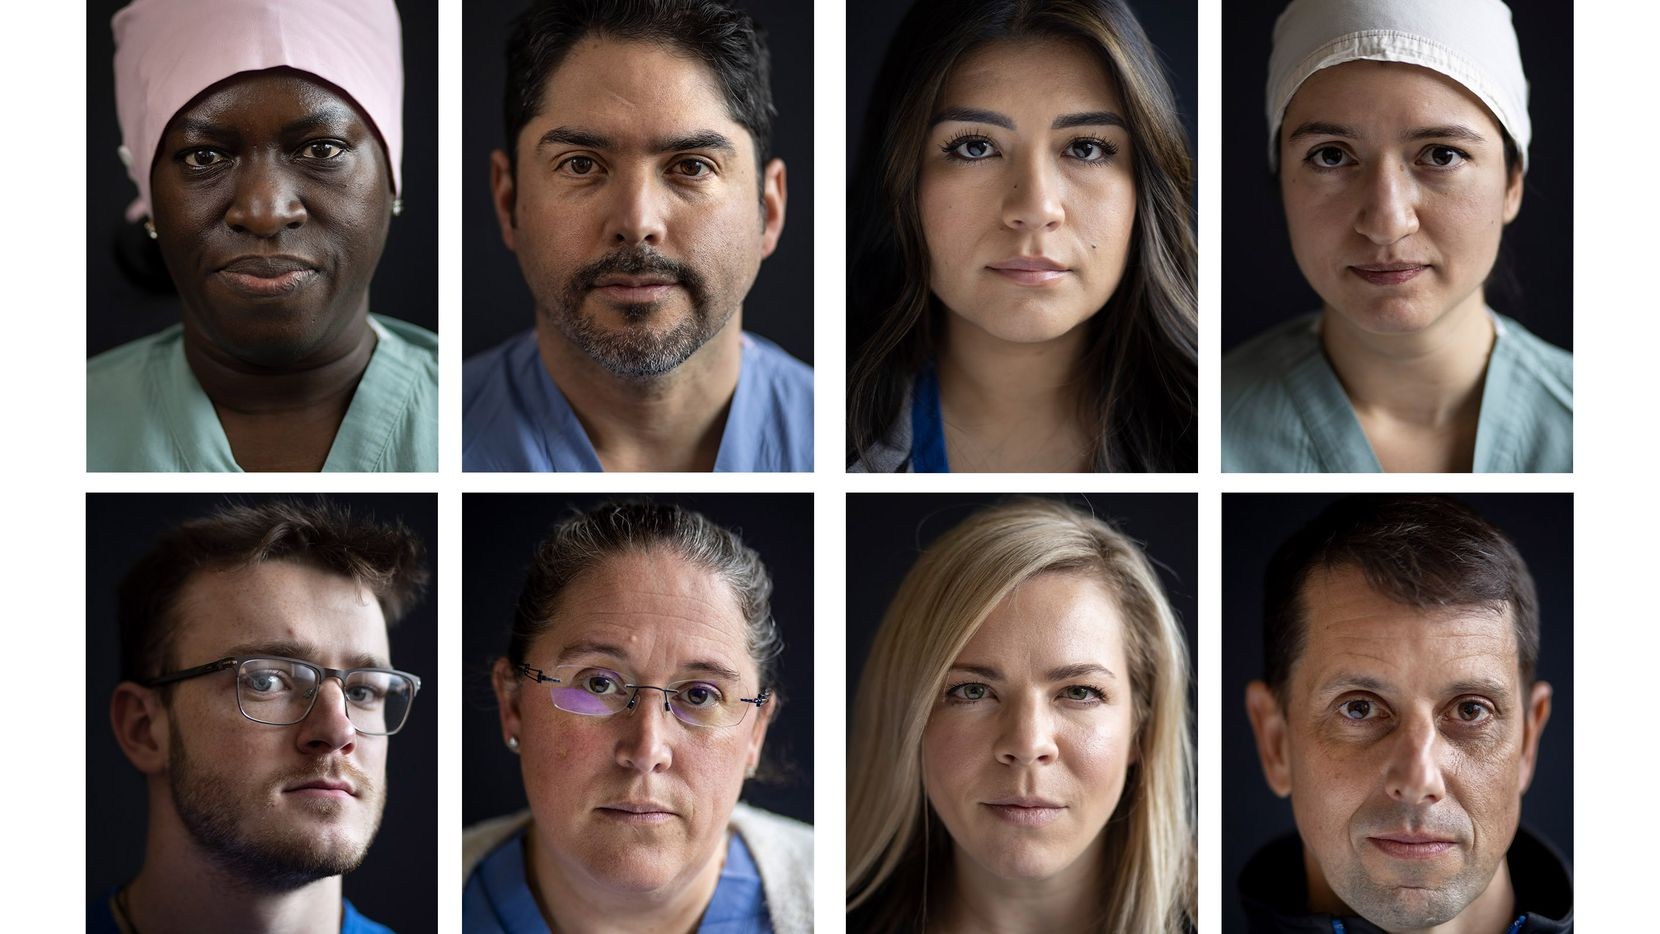 In this composite image are some of the team members in Parkland Memorial Hospital's COVID-19 Tactical Care Unit. From left, top row: nurse Lola Fatoyinbo, certified registered nurse anesthetist Steven Vela, nurse Bianca Castillo, nurse Byanka Ponce. Bottom row: nurse Sam White, nurse and senior vice president of nursing for surgical services Samantha Rowley, nurse Hannah Ramsey and Dr. Matt Leveno, Tactical Care Unit medical director. The team members were photographed Feb. 10.